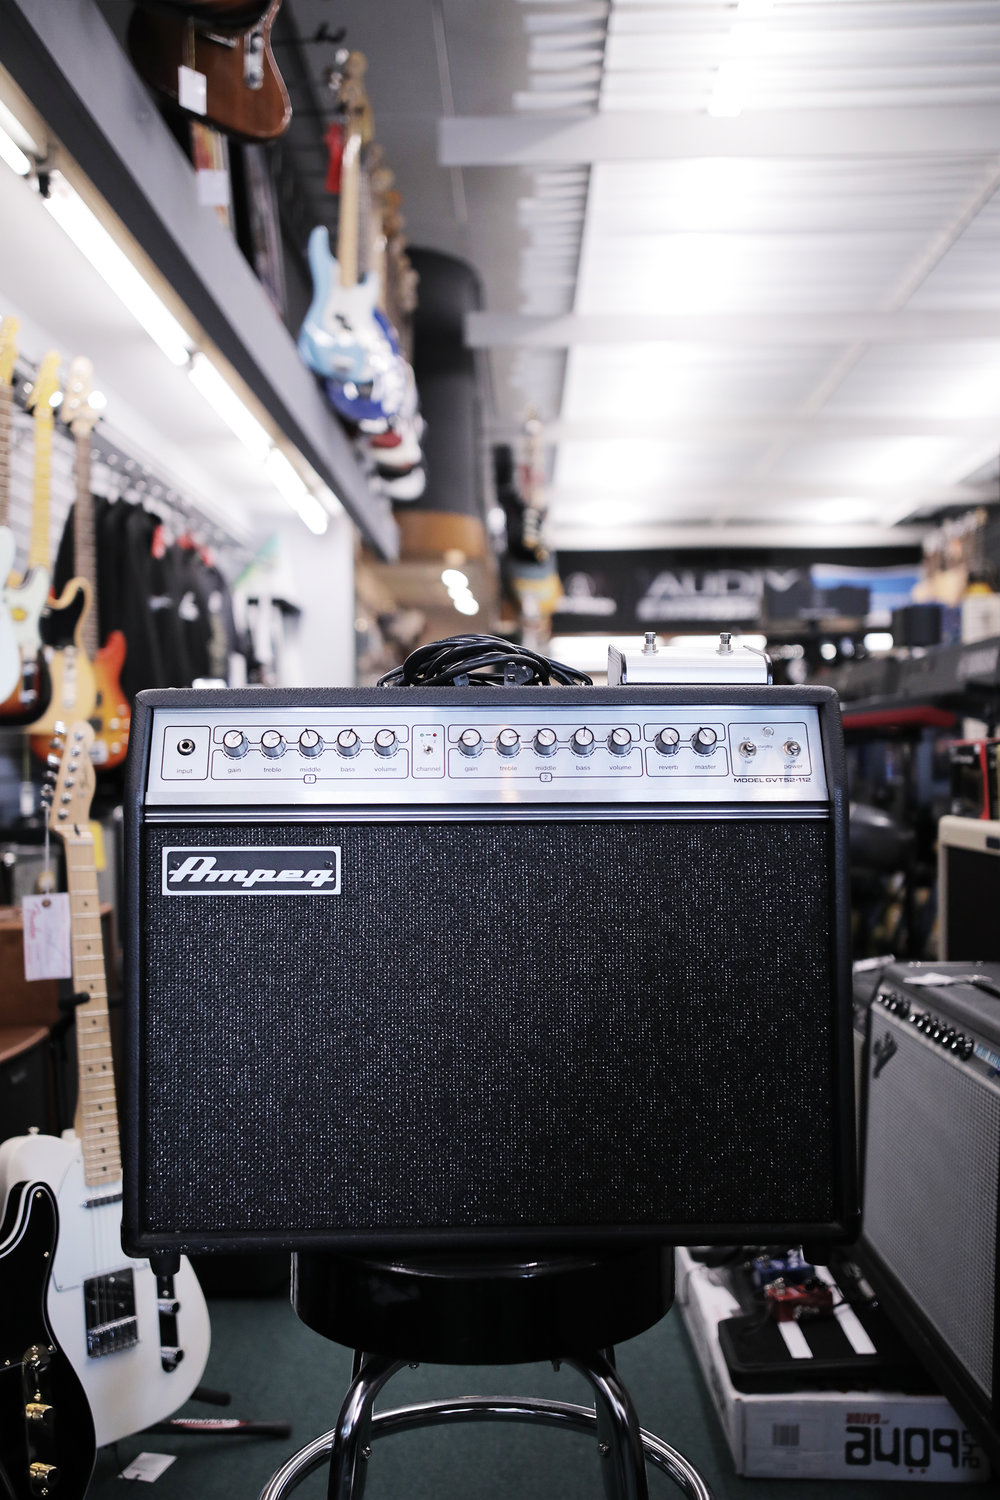 USED - Ampeg GVT52-112 w/Footswitch - $350